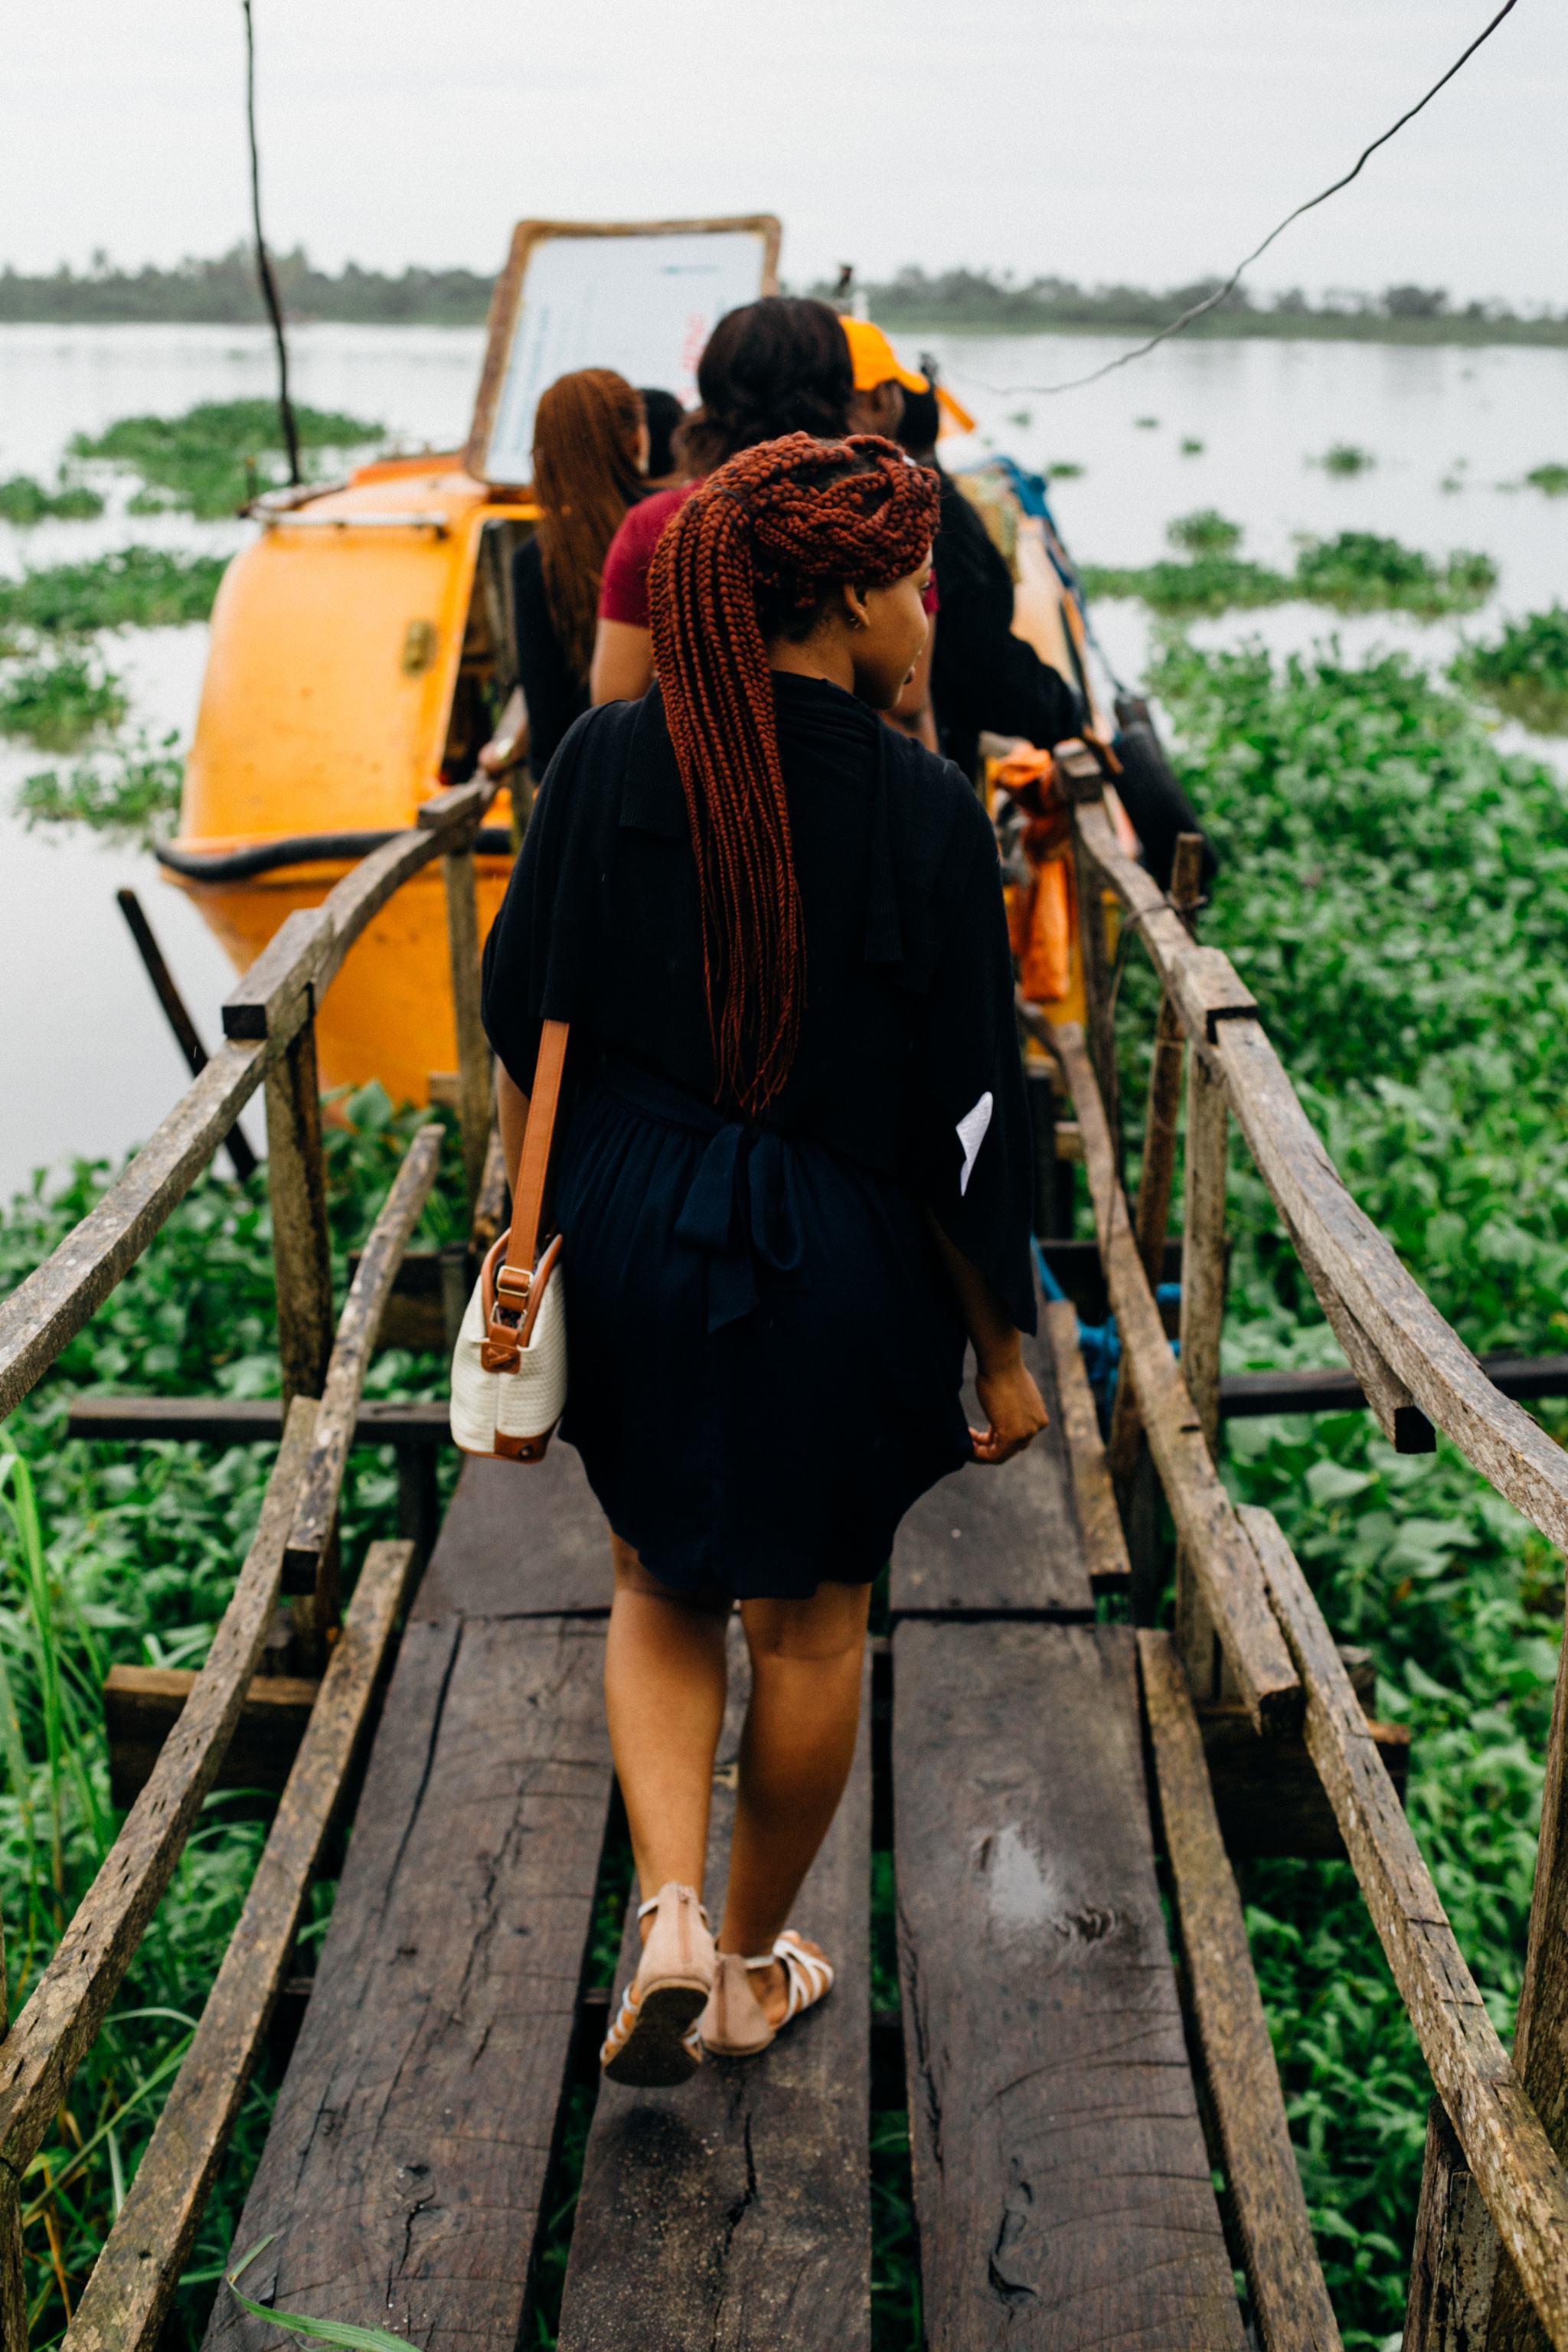 Tourists walking into the Orange Boat, Marina, Badagry